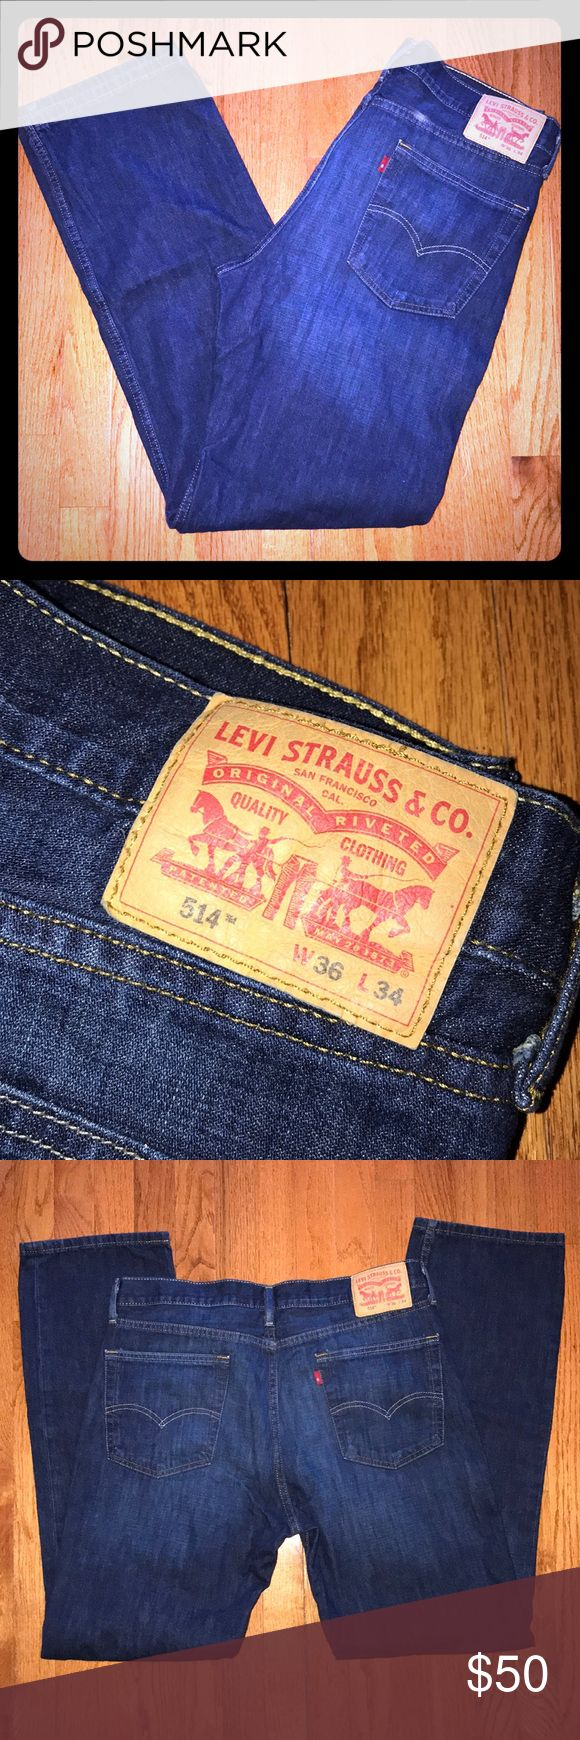 Men's Levi's 514 Jeans 36/34 Men's Levi's 514 Straight Leg Jeans Size 36 waist, 34 inseam. Zipper fly. Dark Blue Wash. Like New!  From my smoke free home. Levi's Jeans Straight